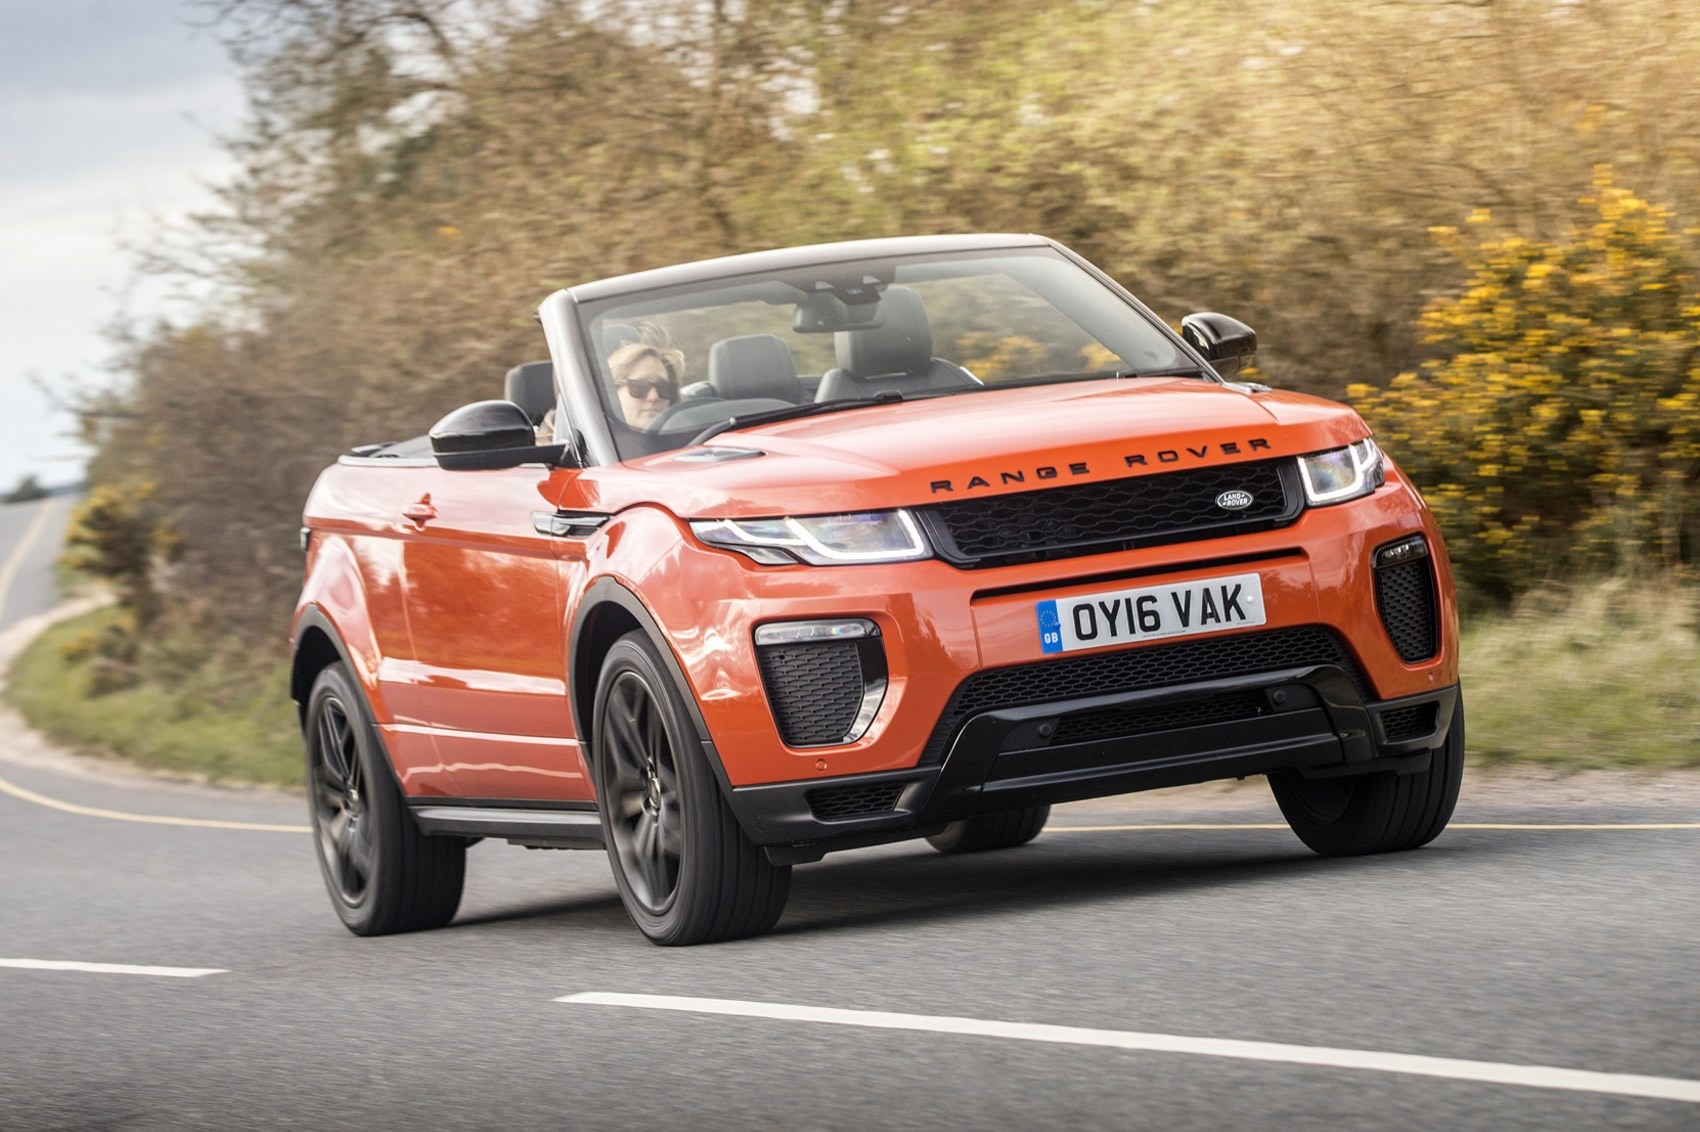 range rover evoque convertible 2 0 td4 hse dynamic 2016. Black Bedroom Furniture Sets. Home Design Ideas